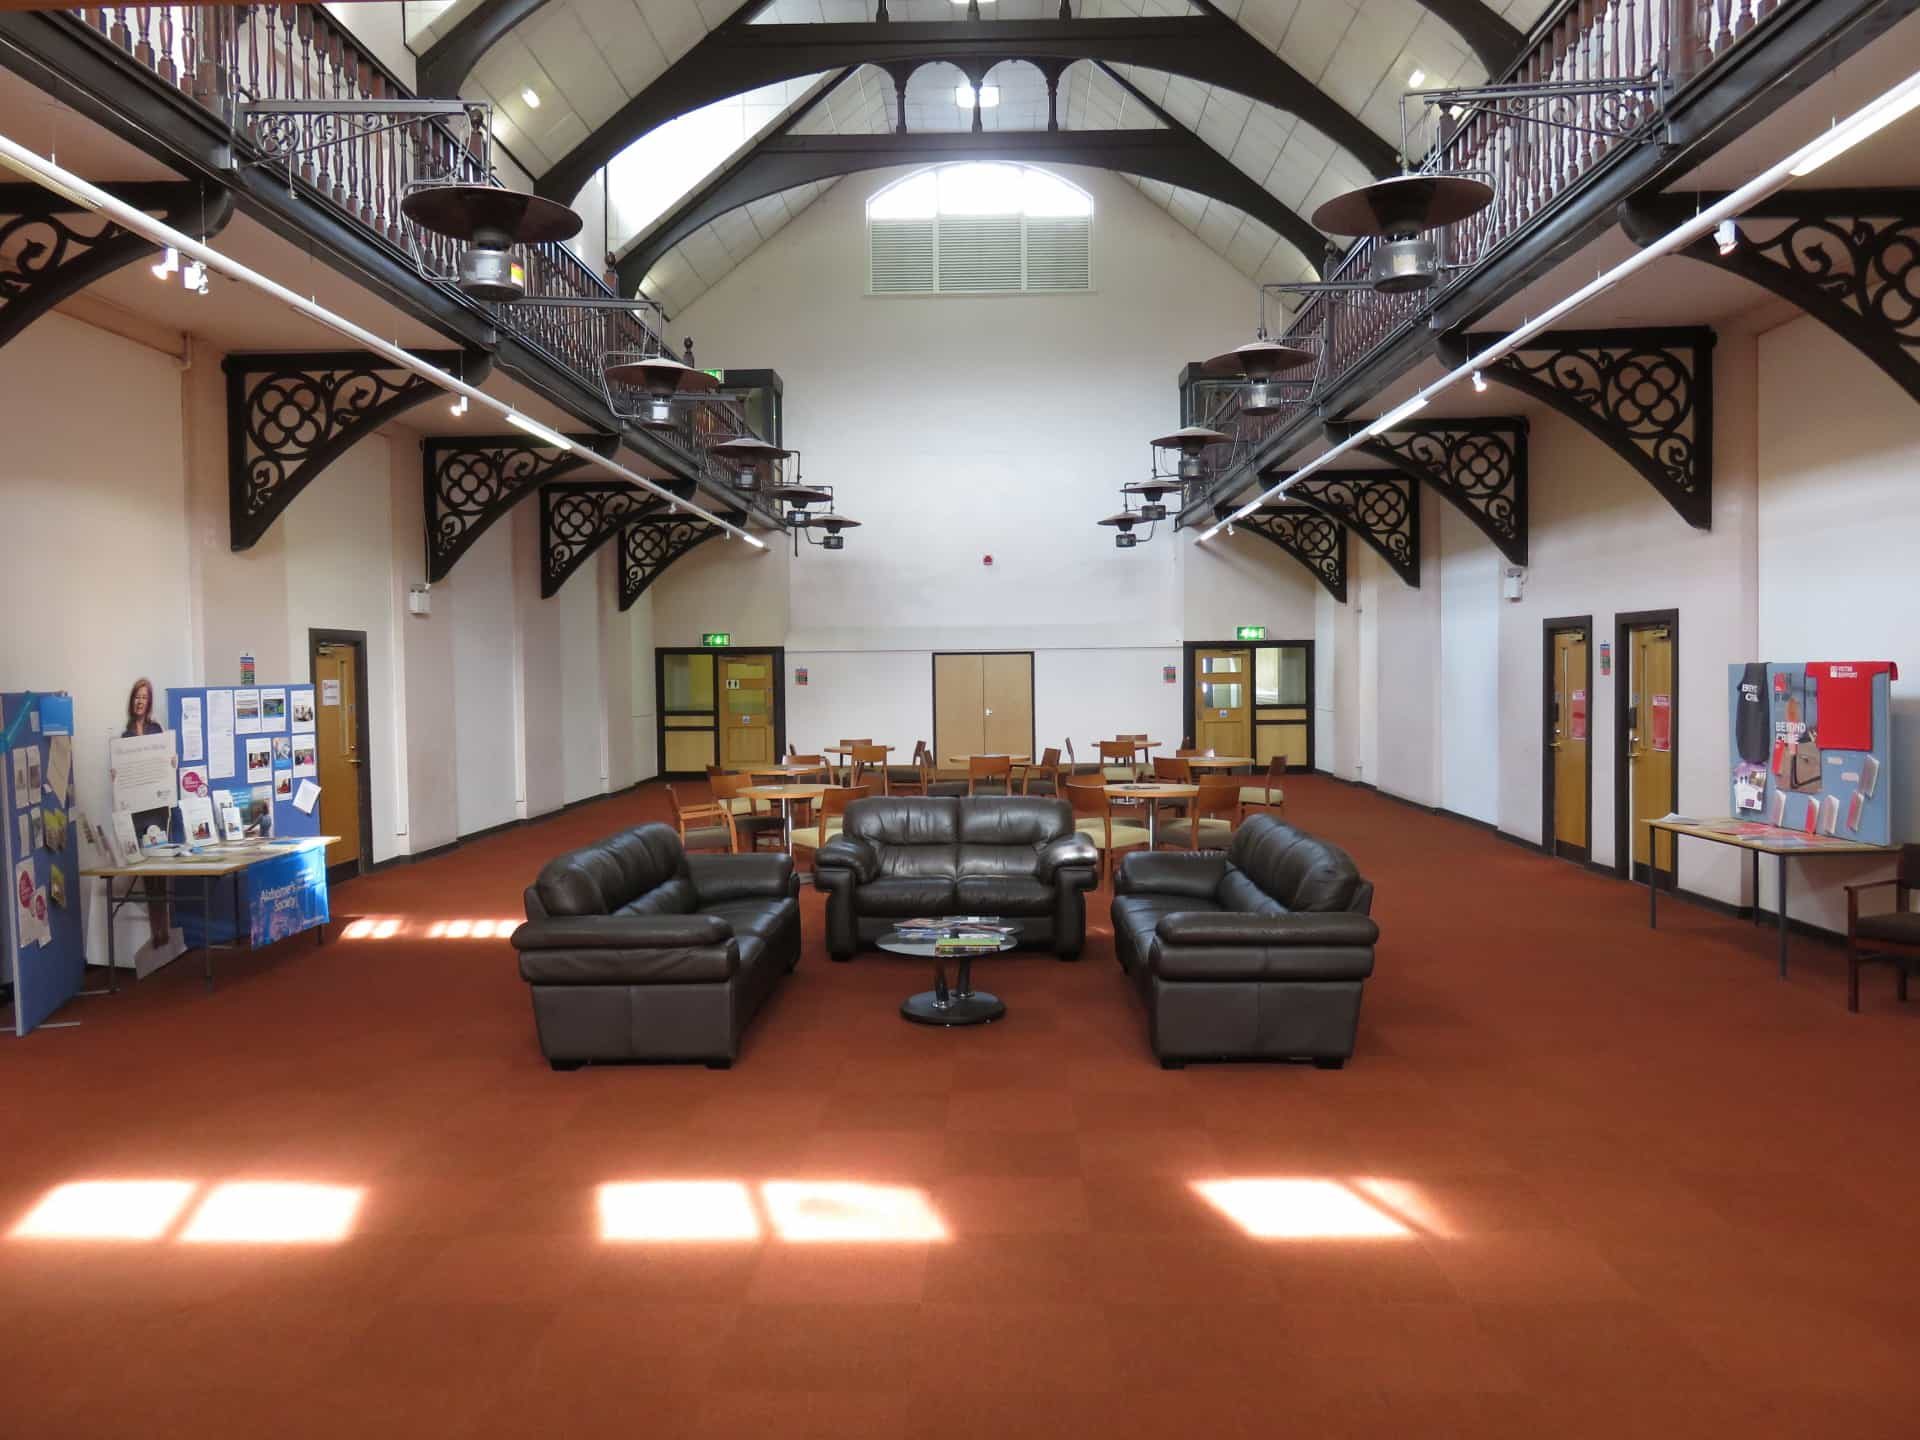 Mexborough Business Centre Main Hall - Available to Hire Weddings Conferences Business Networking